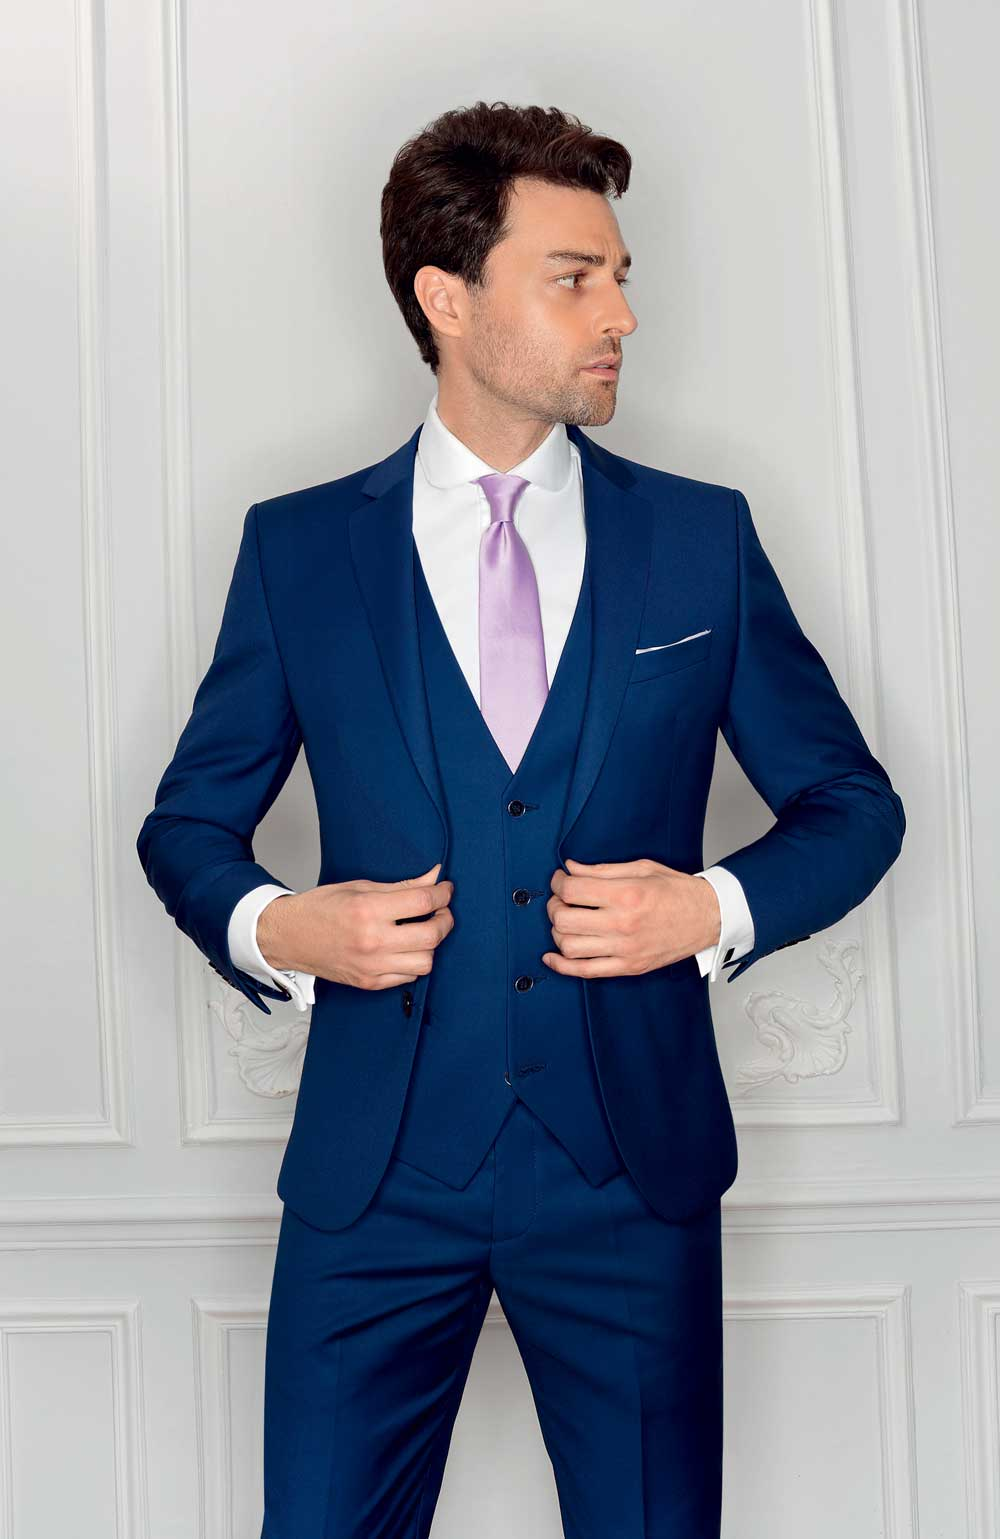 Costumes martine mariages - Costume homme mariage ...